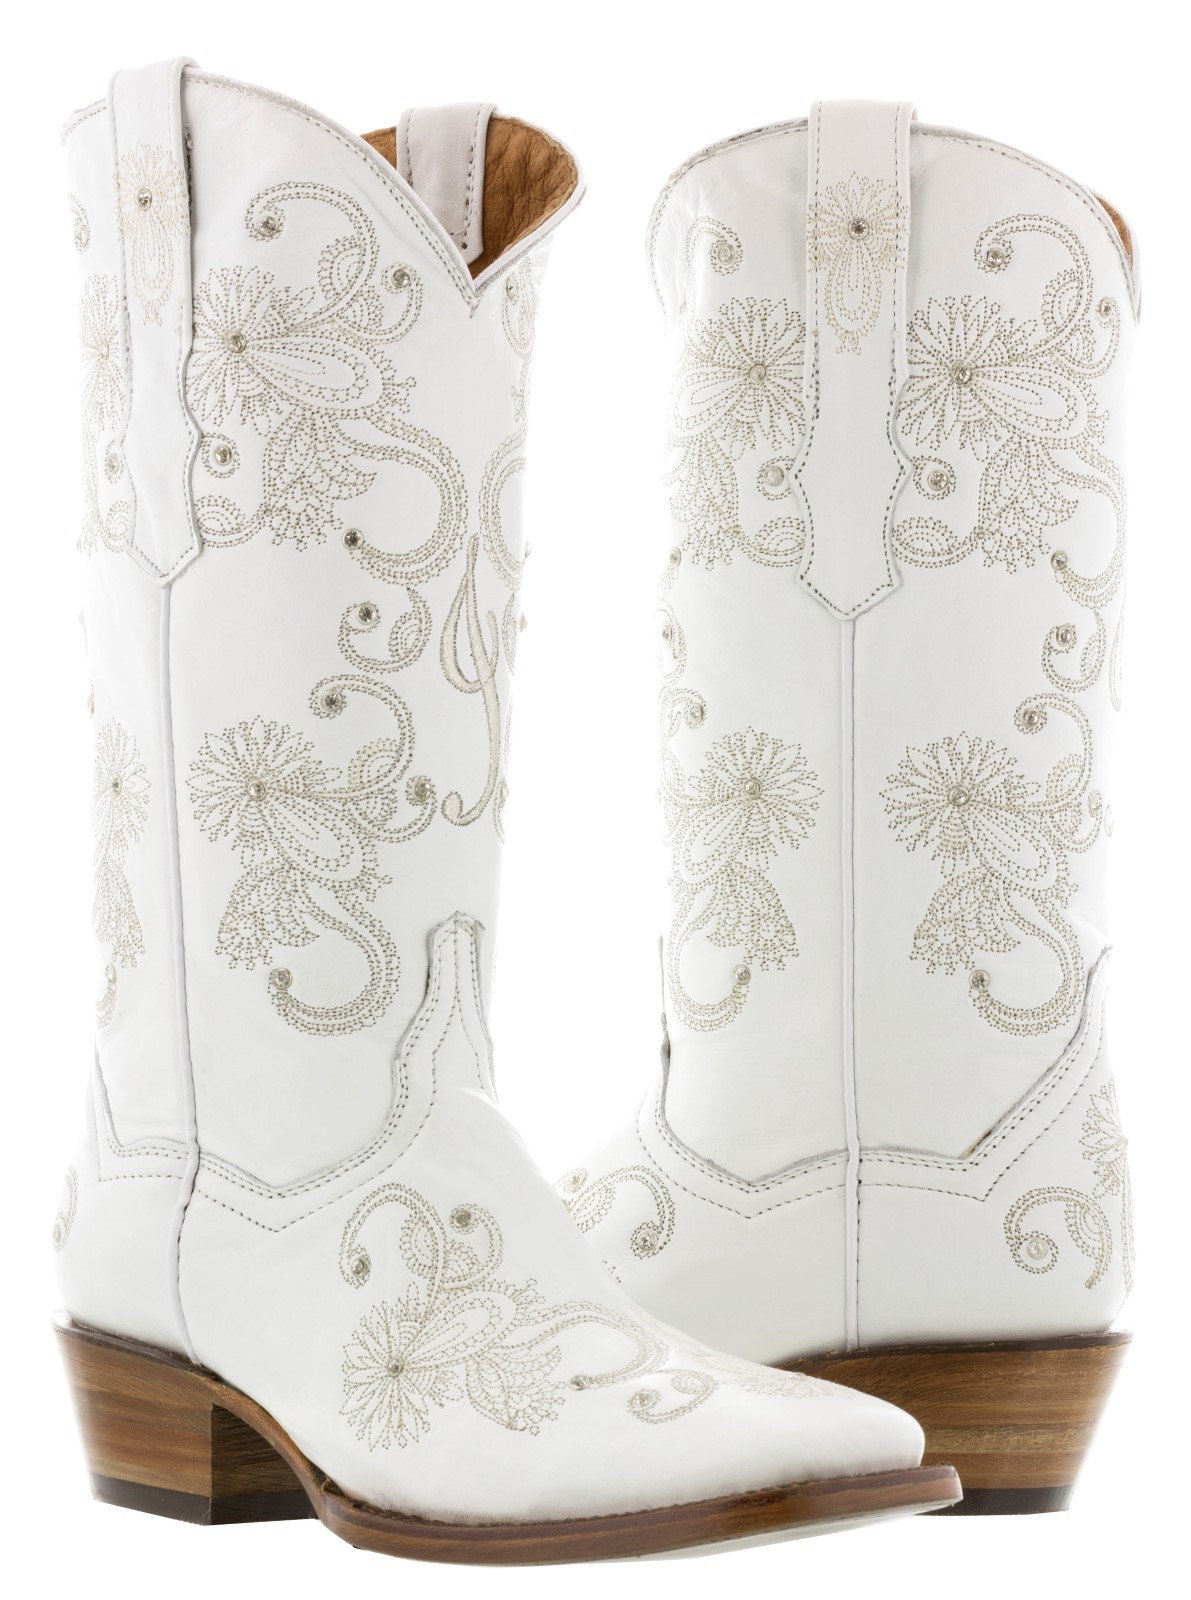 e4374cd6b0c Details about Womens White Wedding Leather Cowboy Cowgirl Boots Rhinestones  Bridal Western New